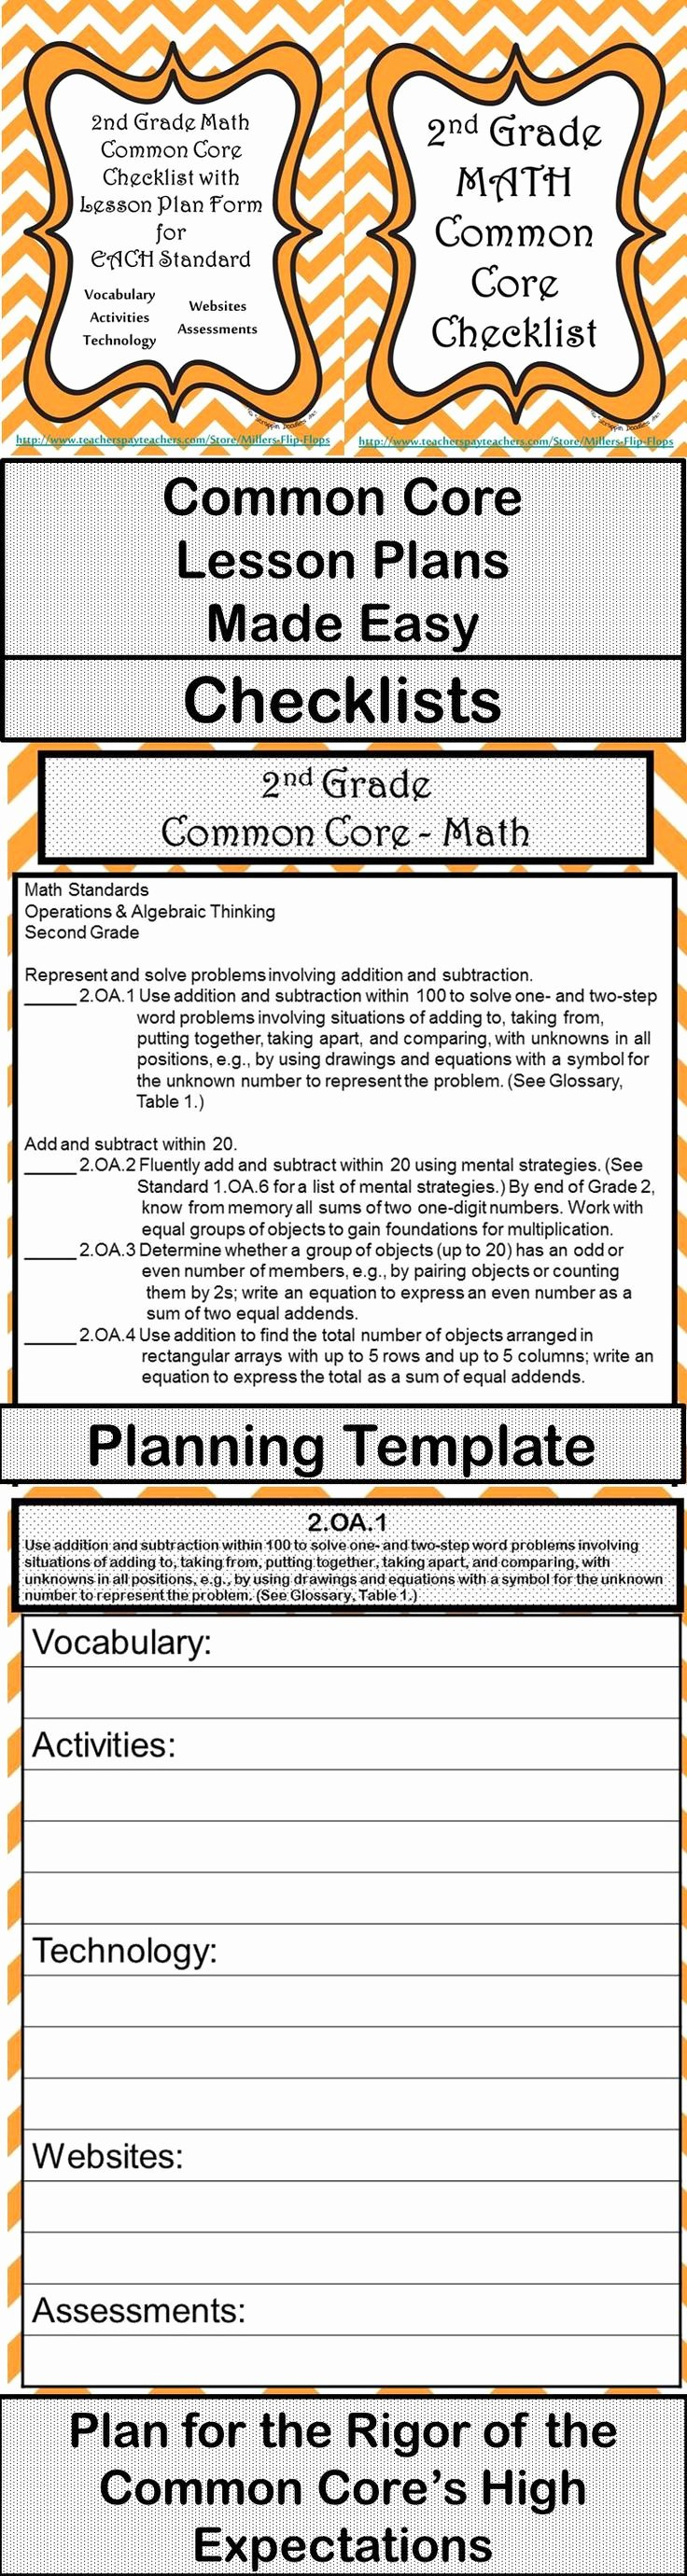 Math Lesson Plan Template Best Of 2nd Grade Math Mon Core Checklist Lesson Planning